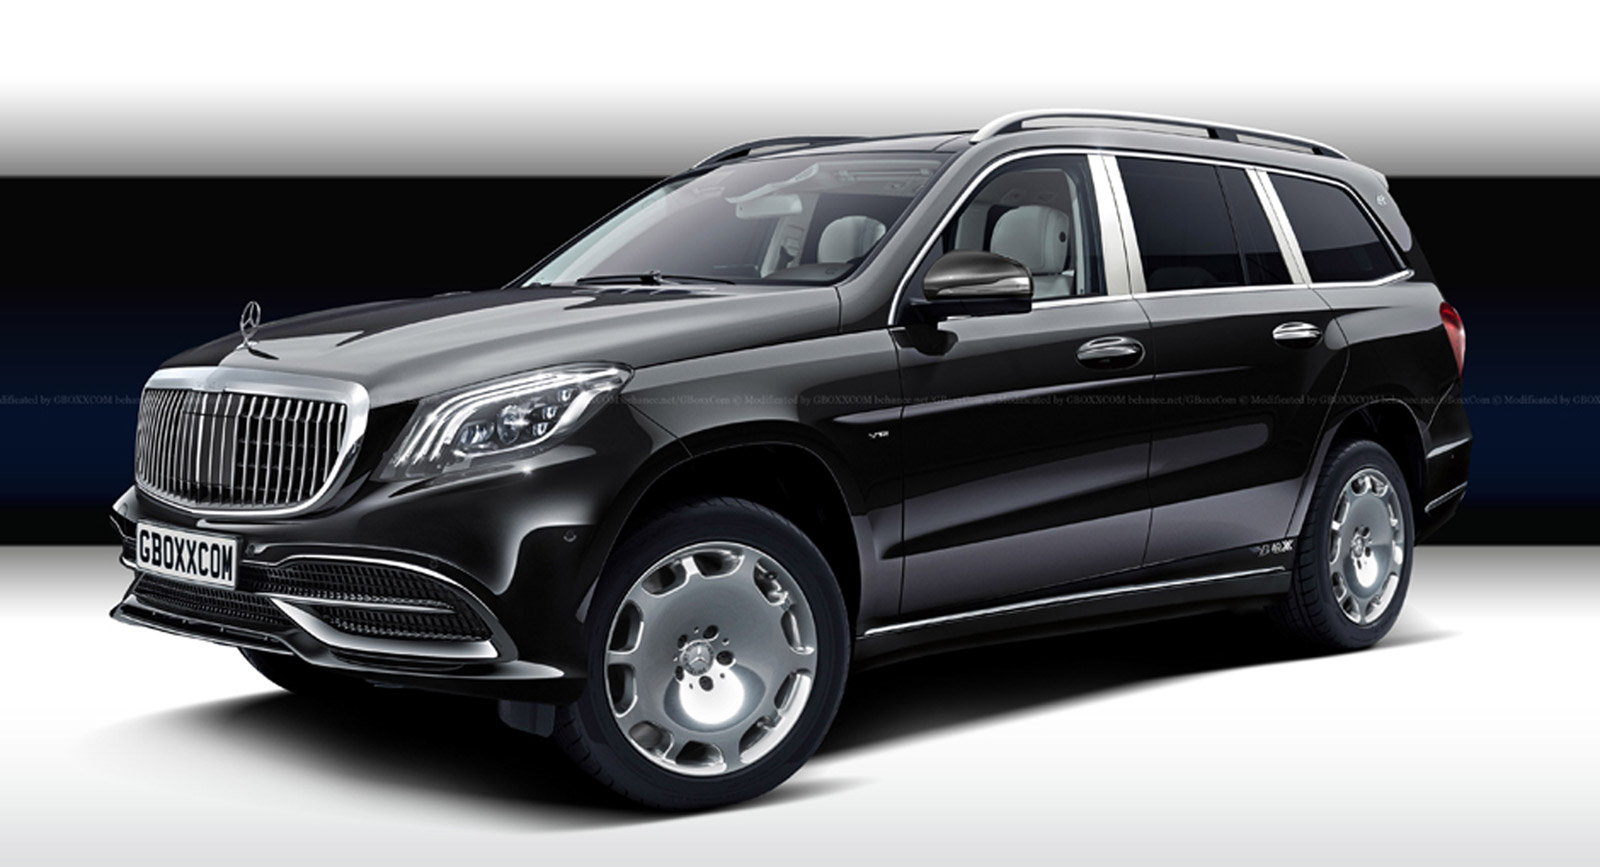 The Maybach GLS Will Probably Look Something Like This